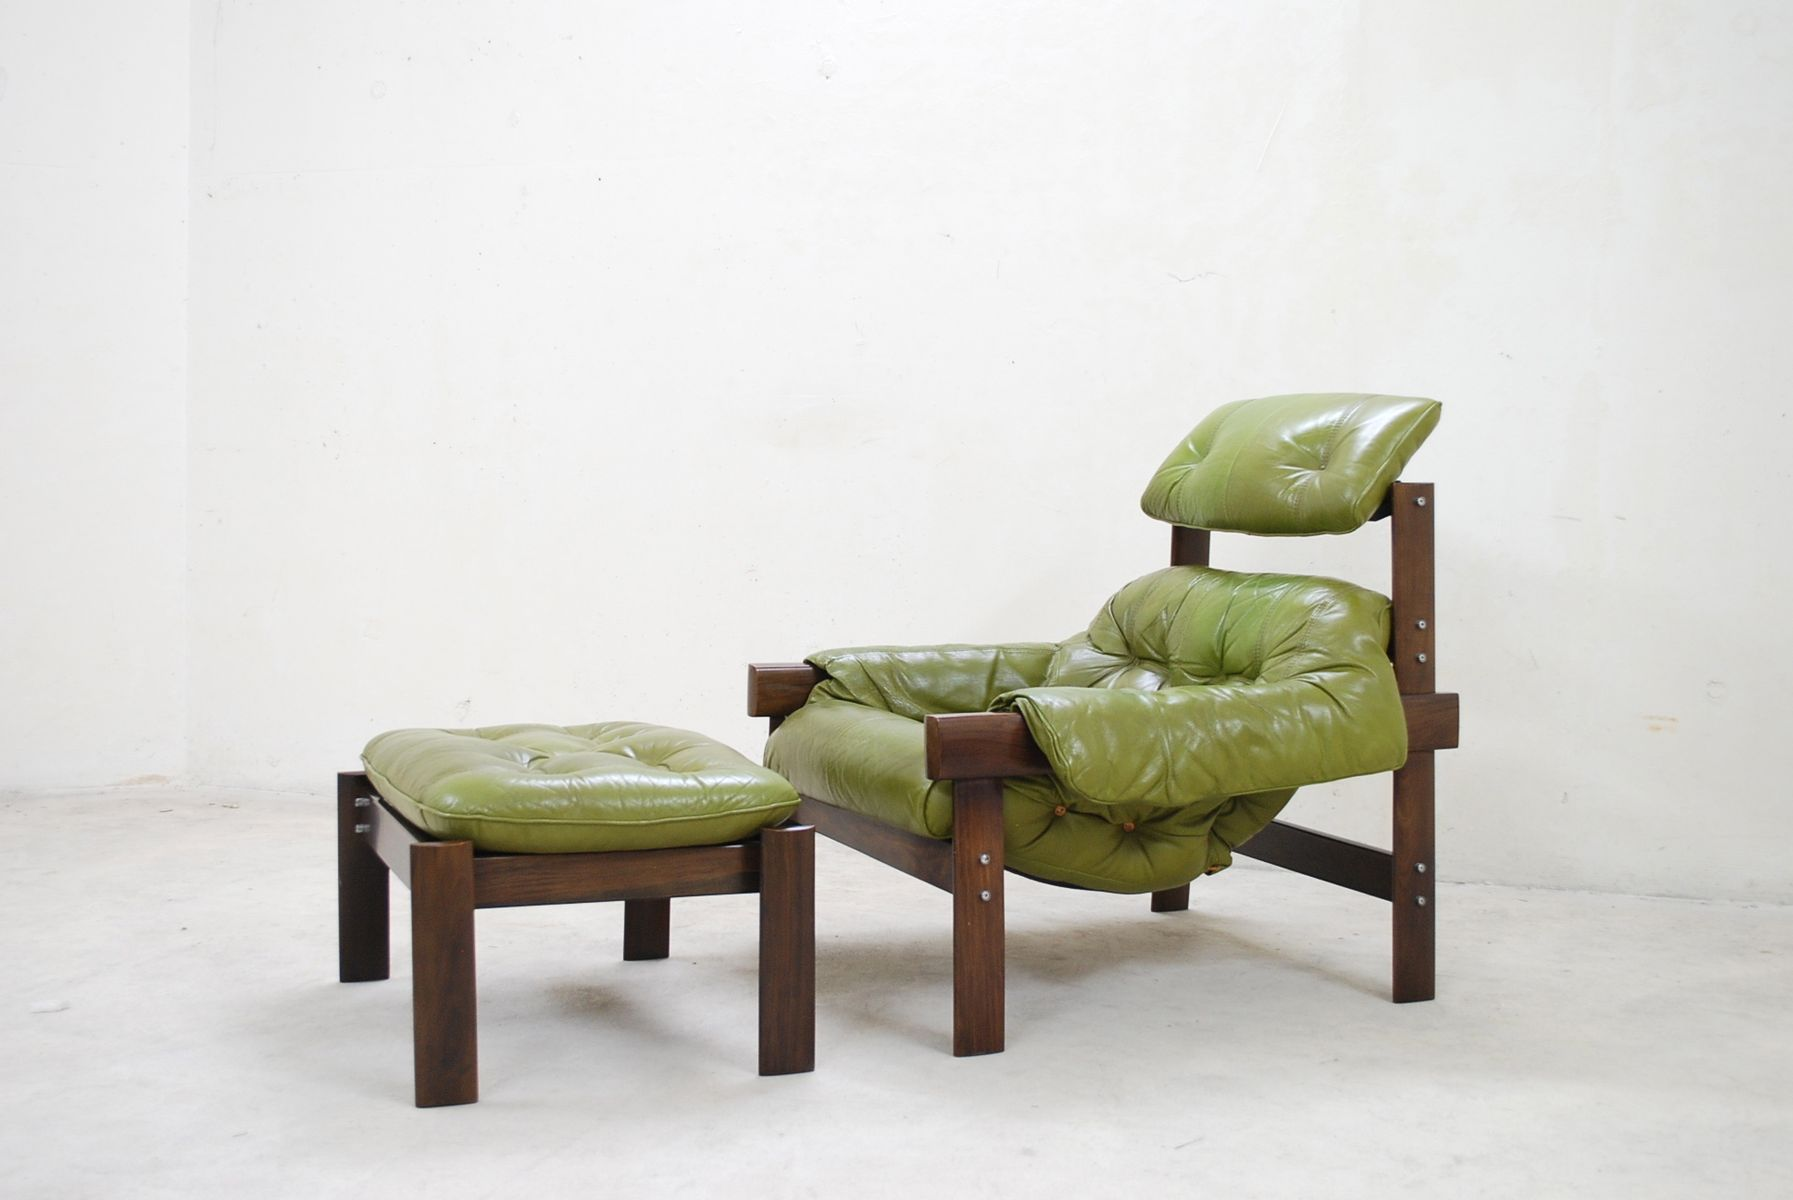 lime green chairs for sale hanging chair costco model mp 041 leather lounge and ottoman